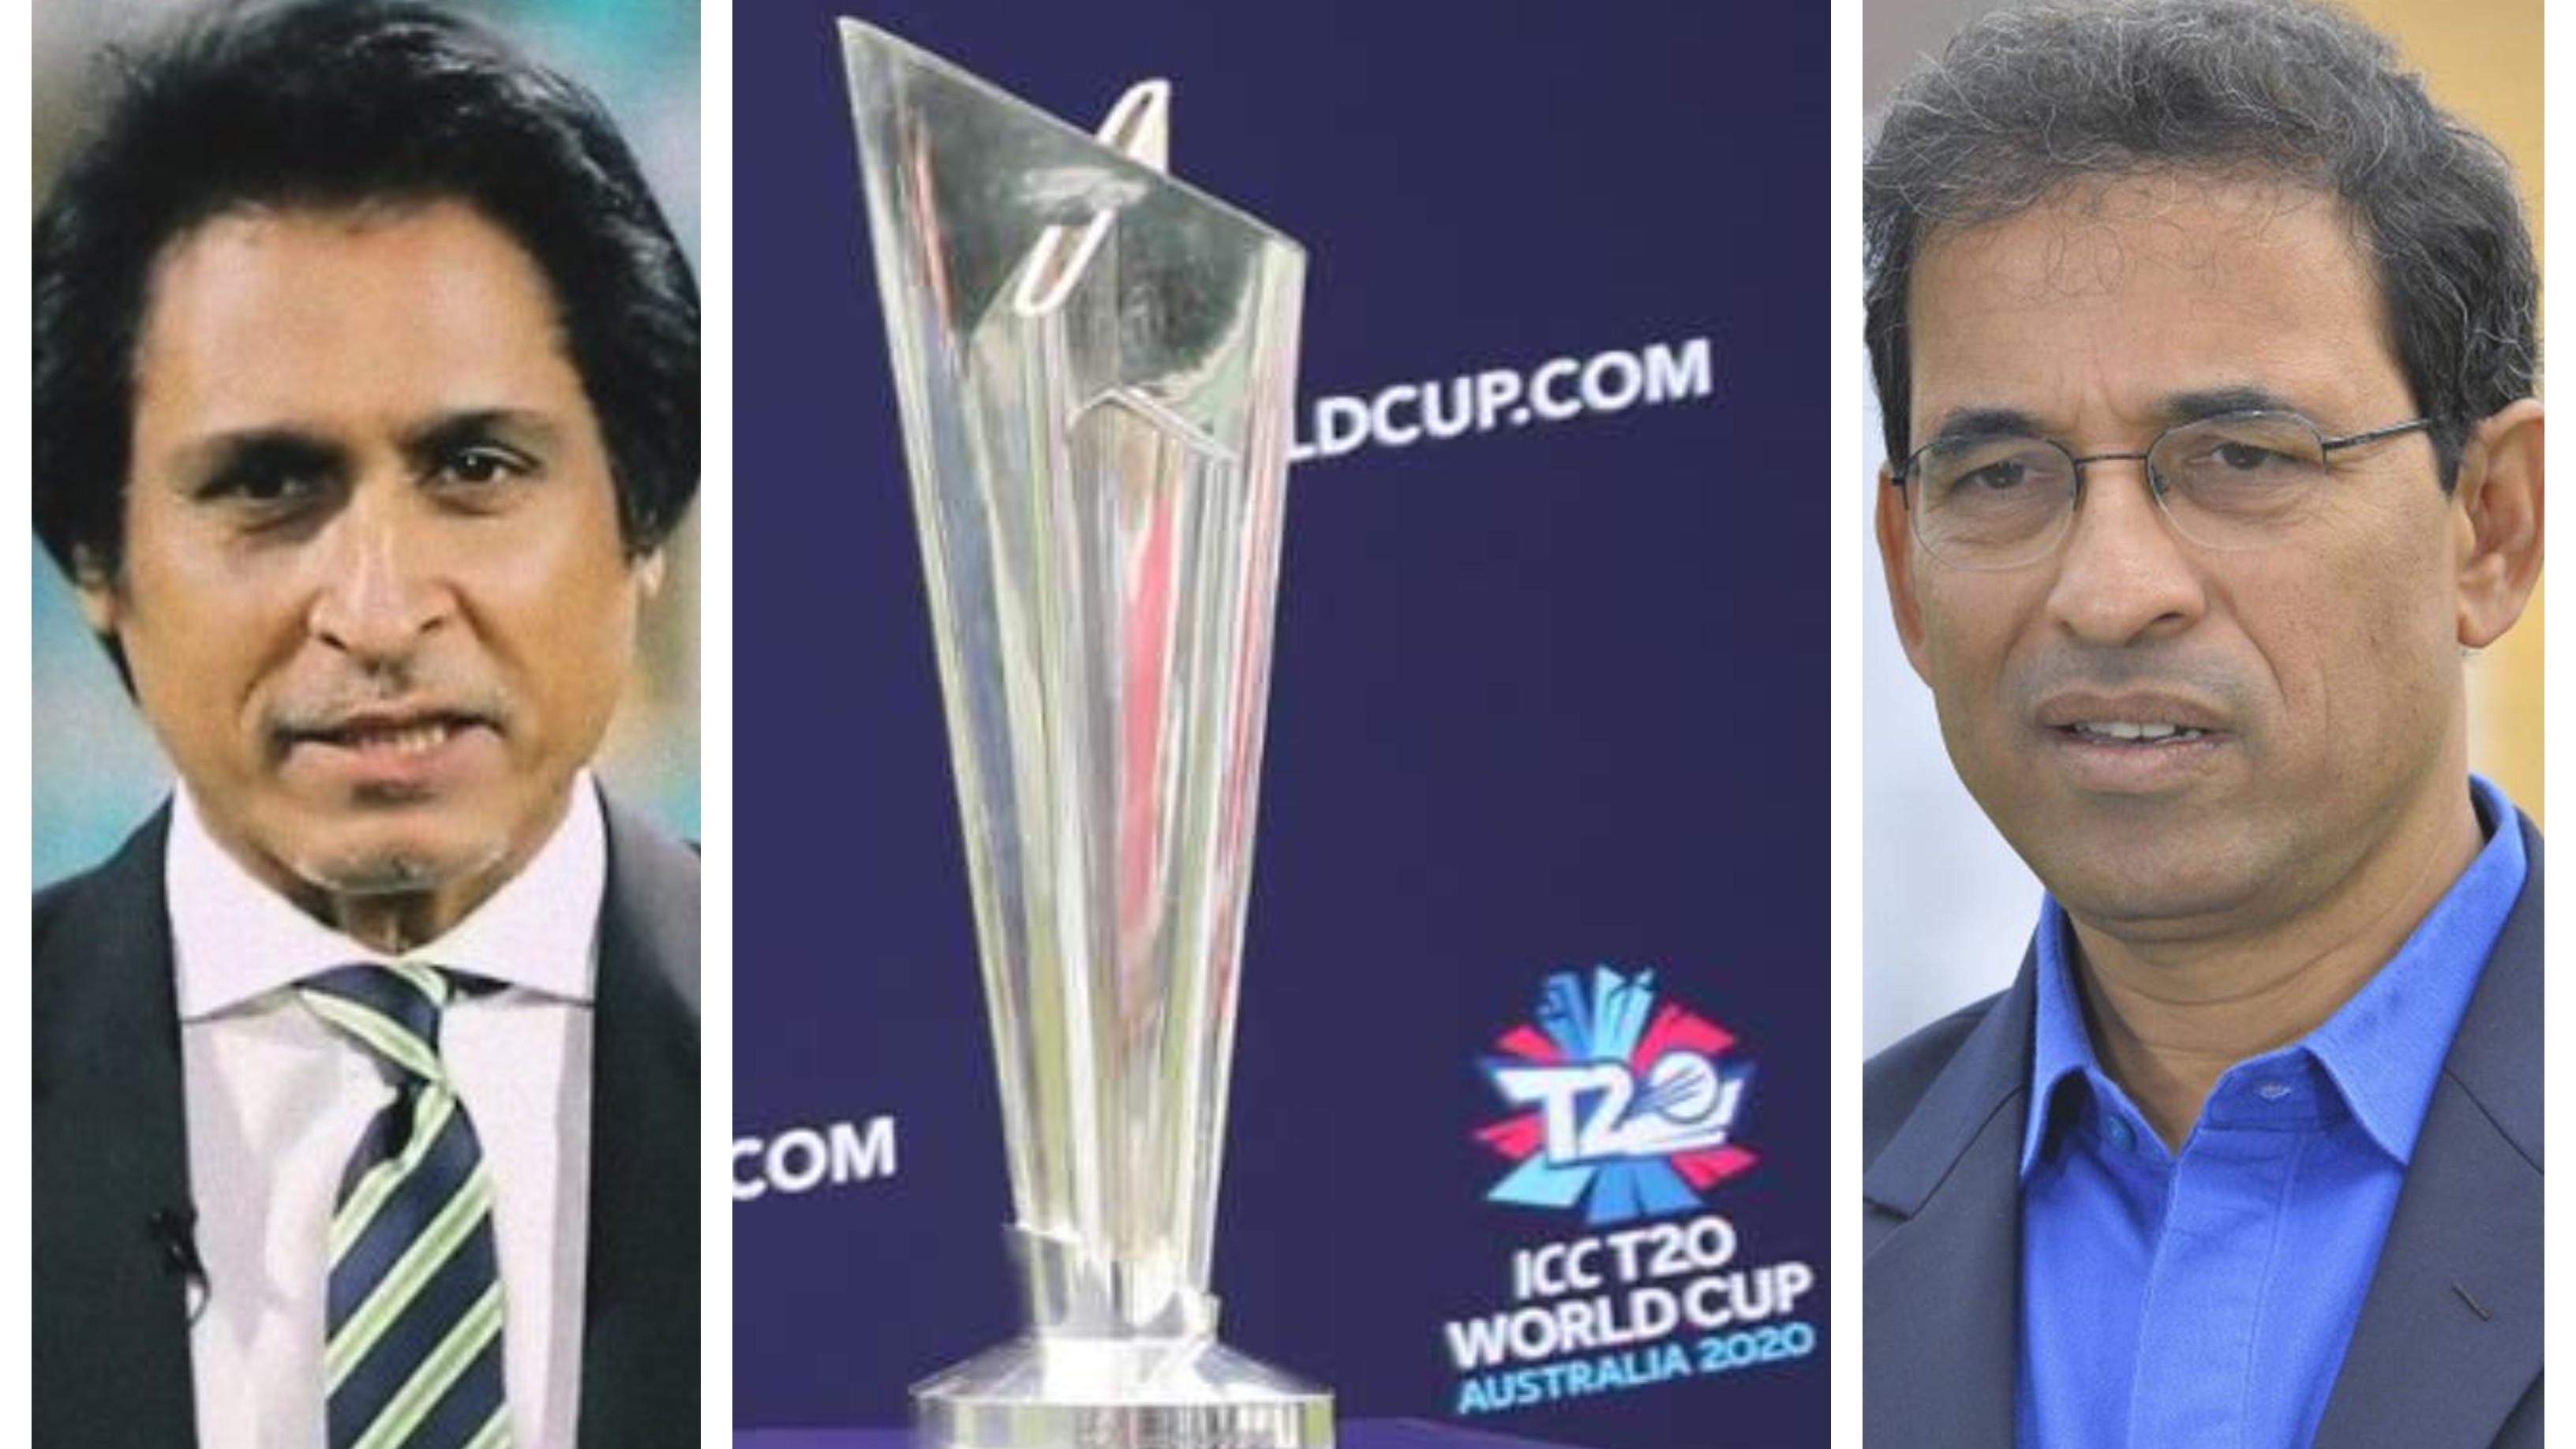 Cricket fraternity reacts to the postponement of T20 World Cup 2020